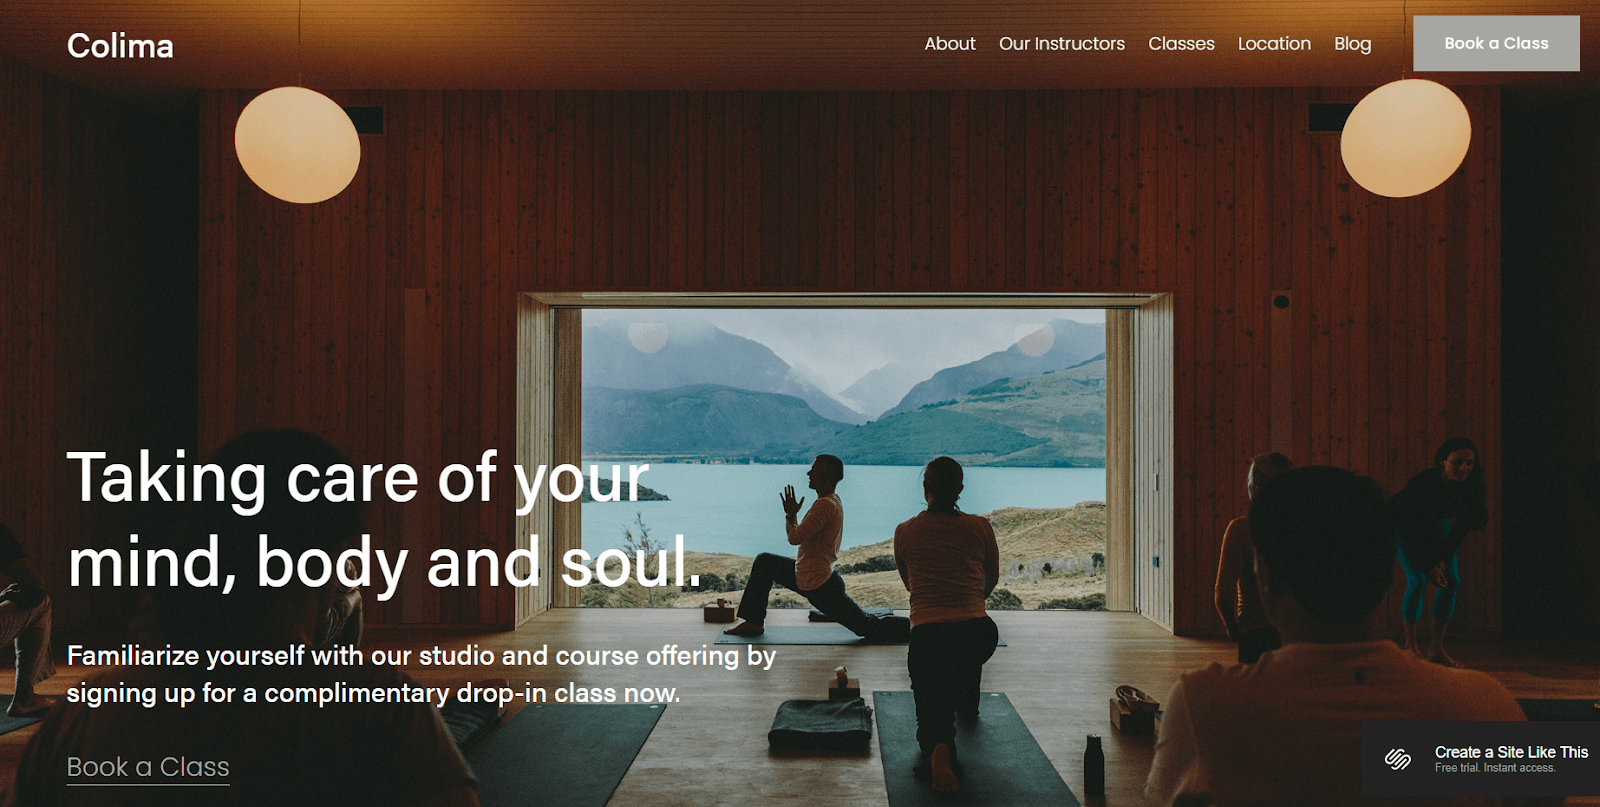 Squarespace's Colima template sets the mood for travel